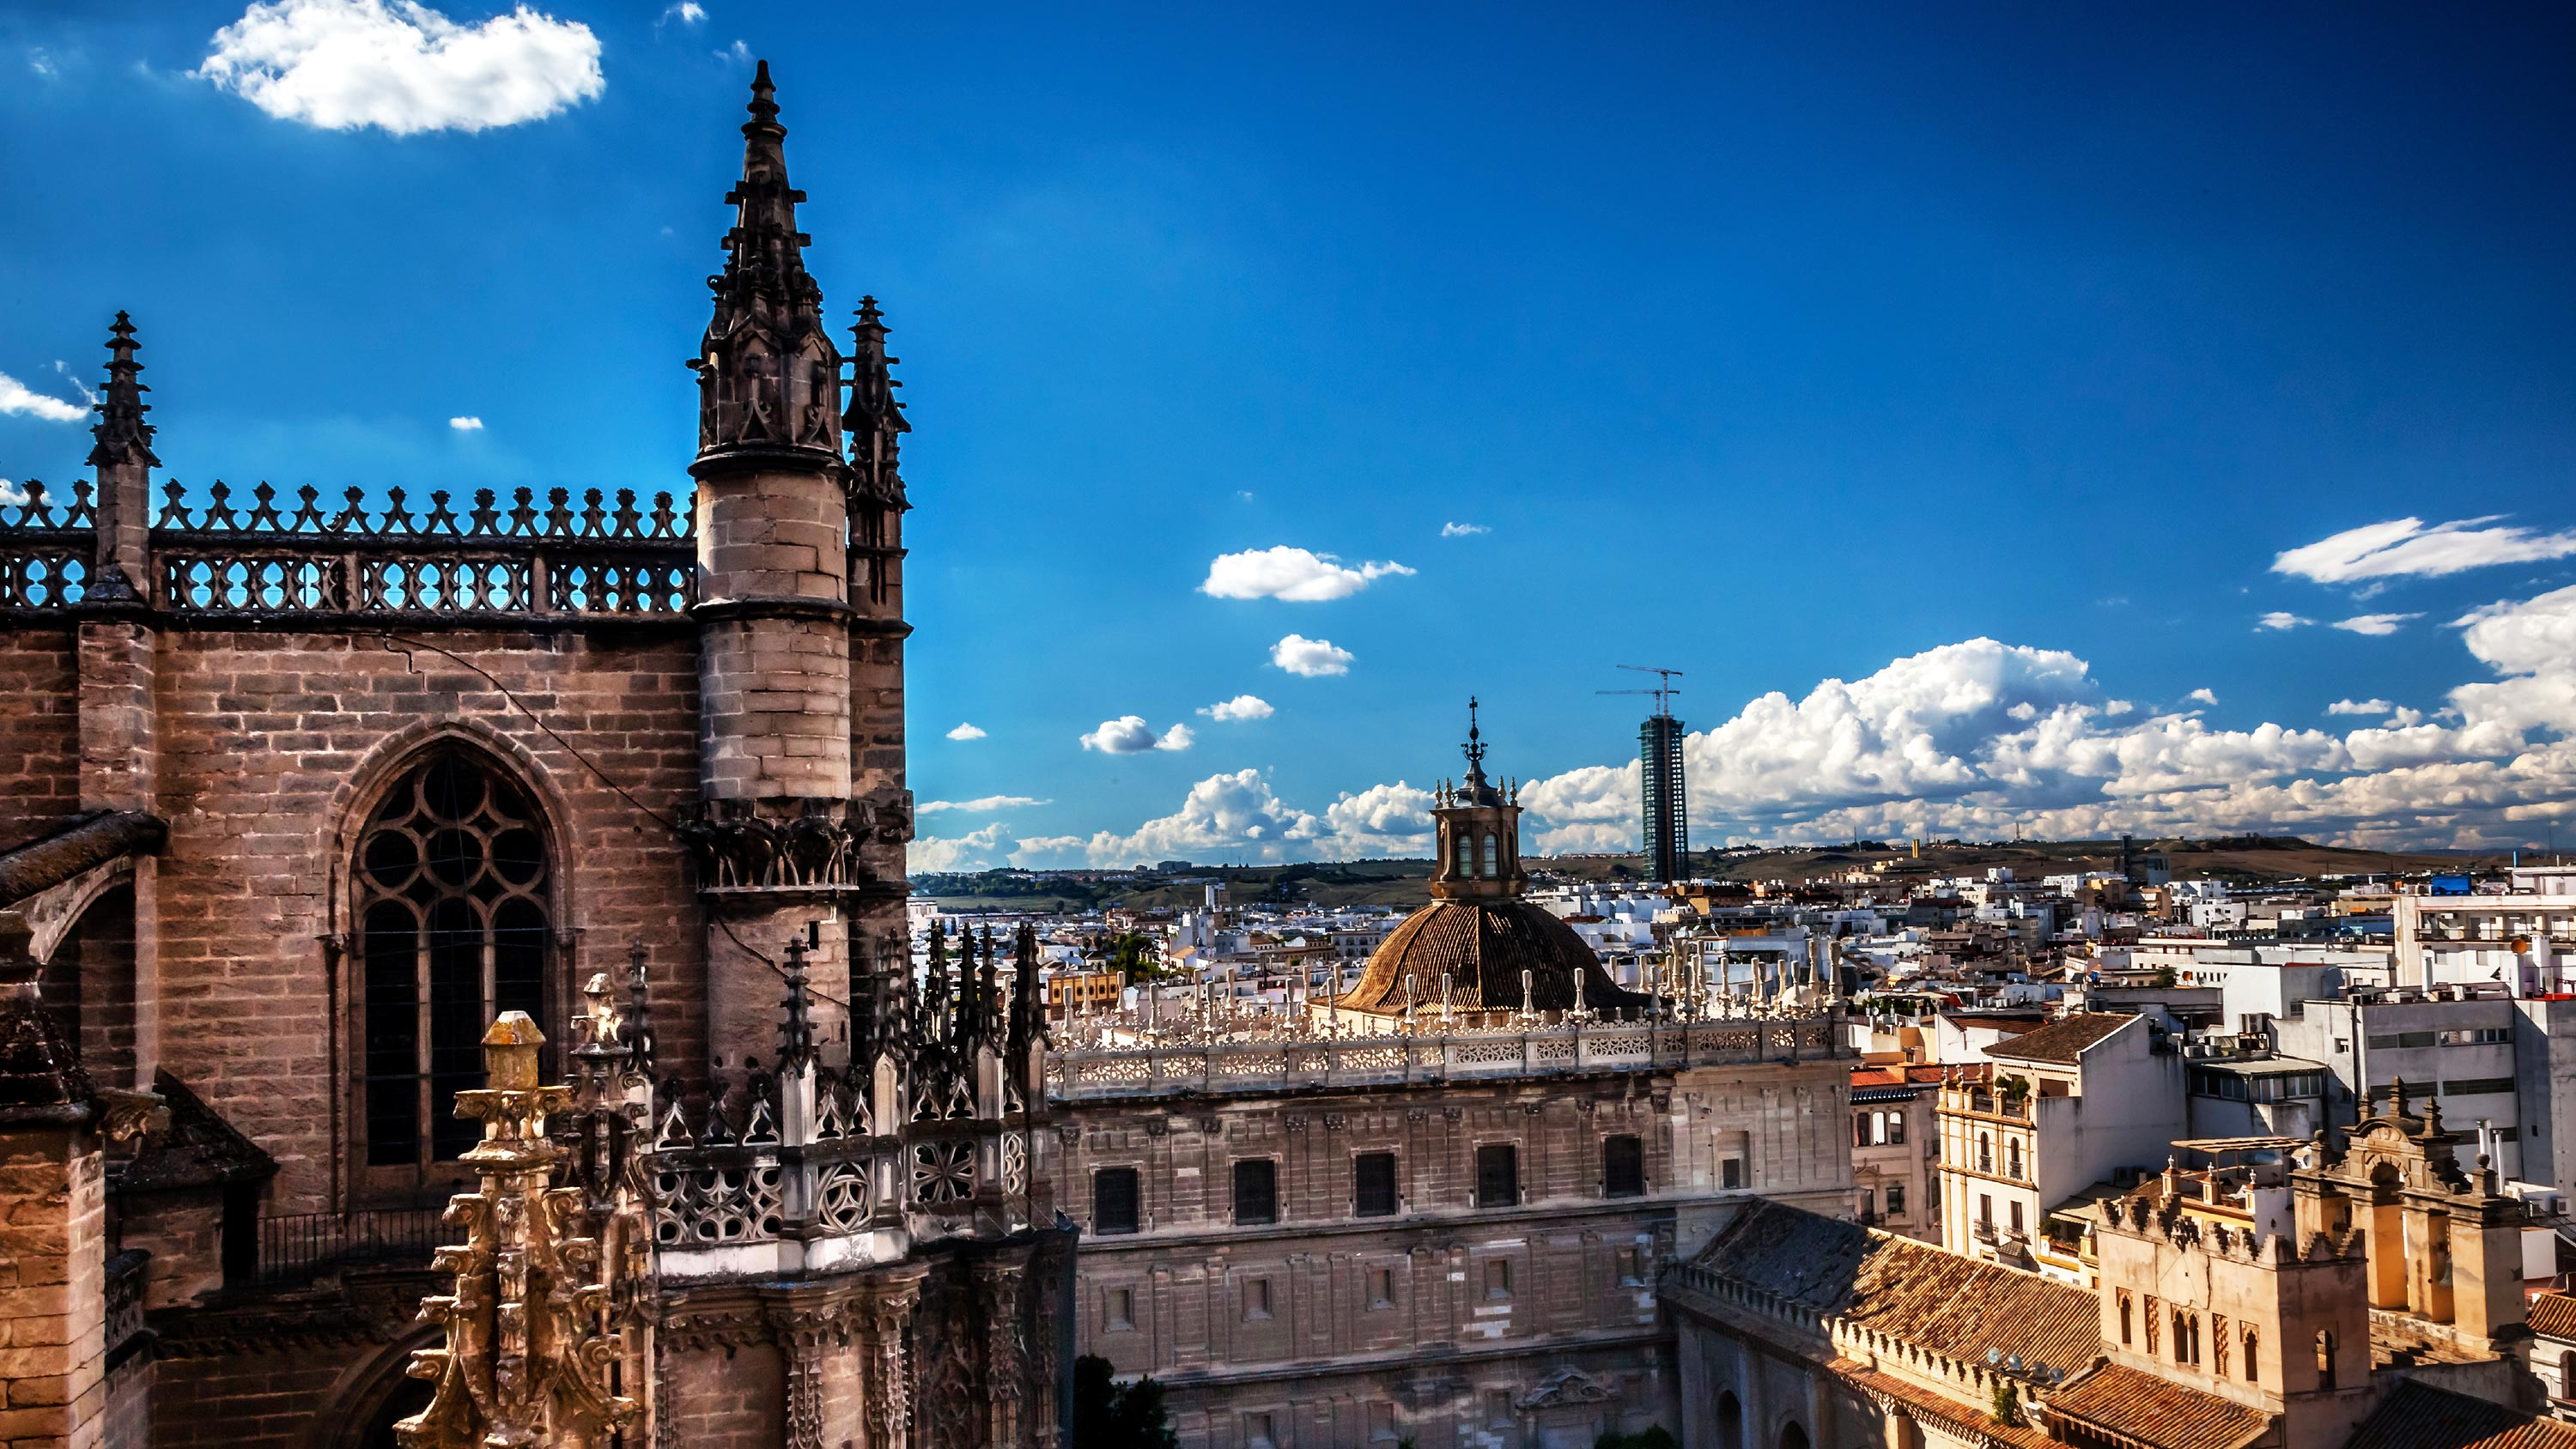 Giralda Tower Seville Cathedral Spain